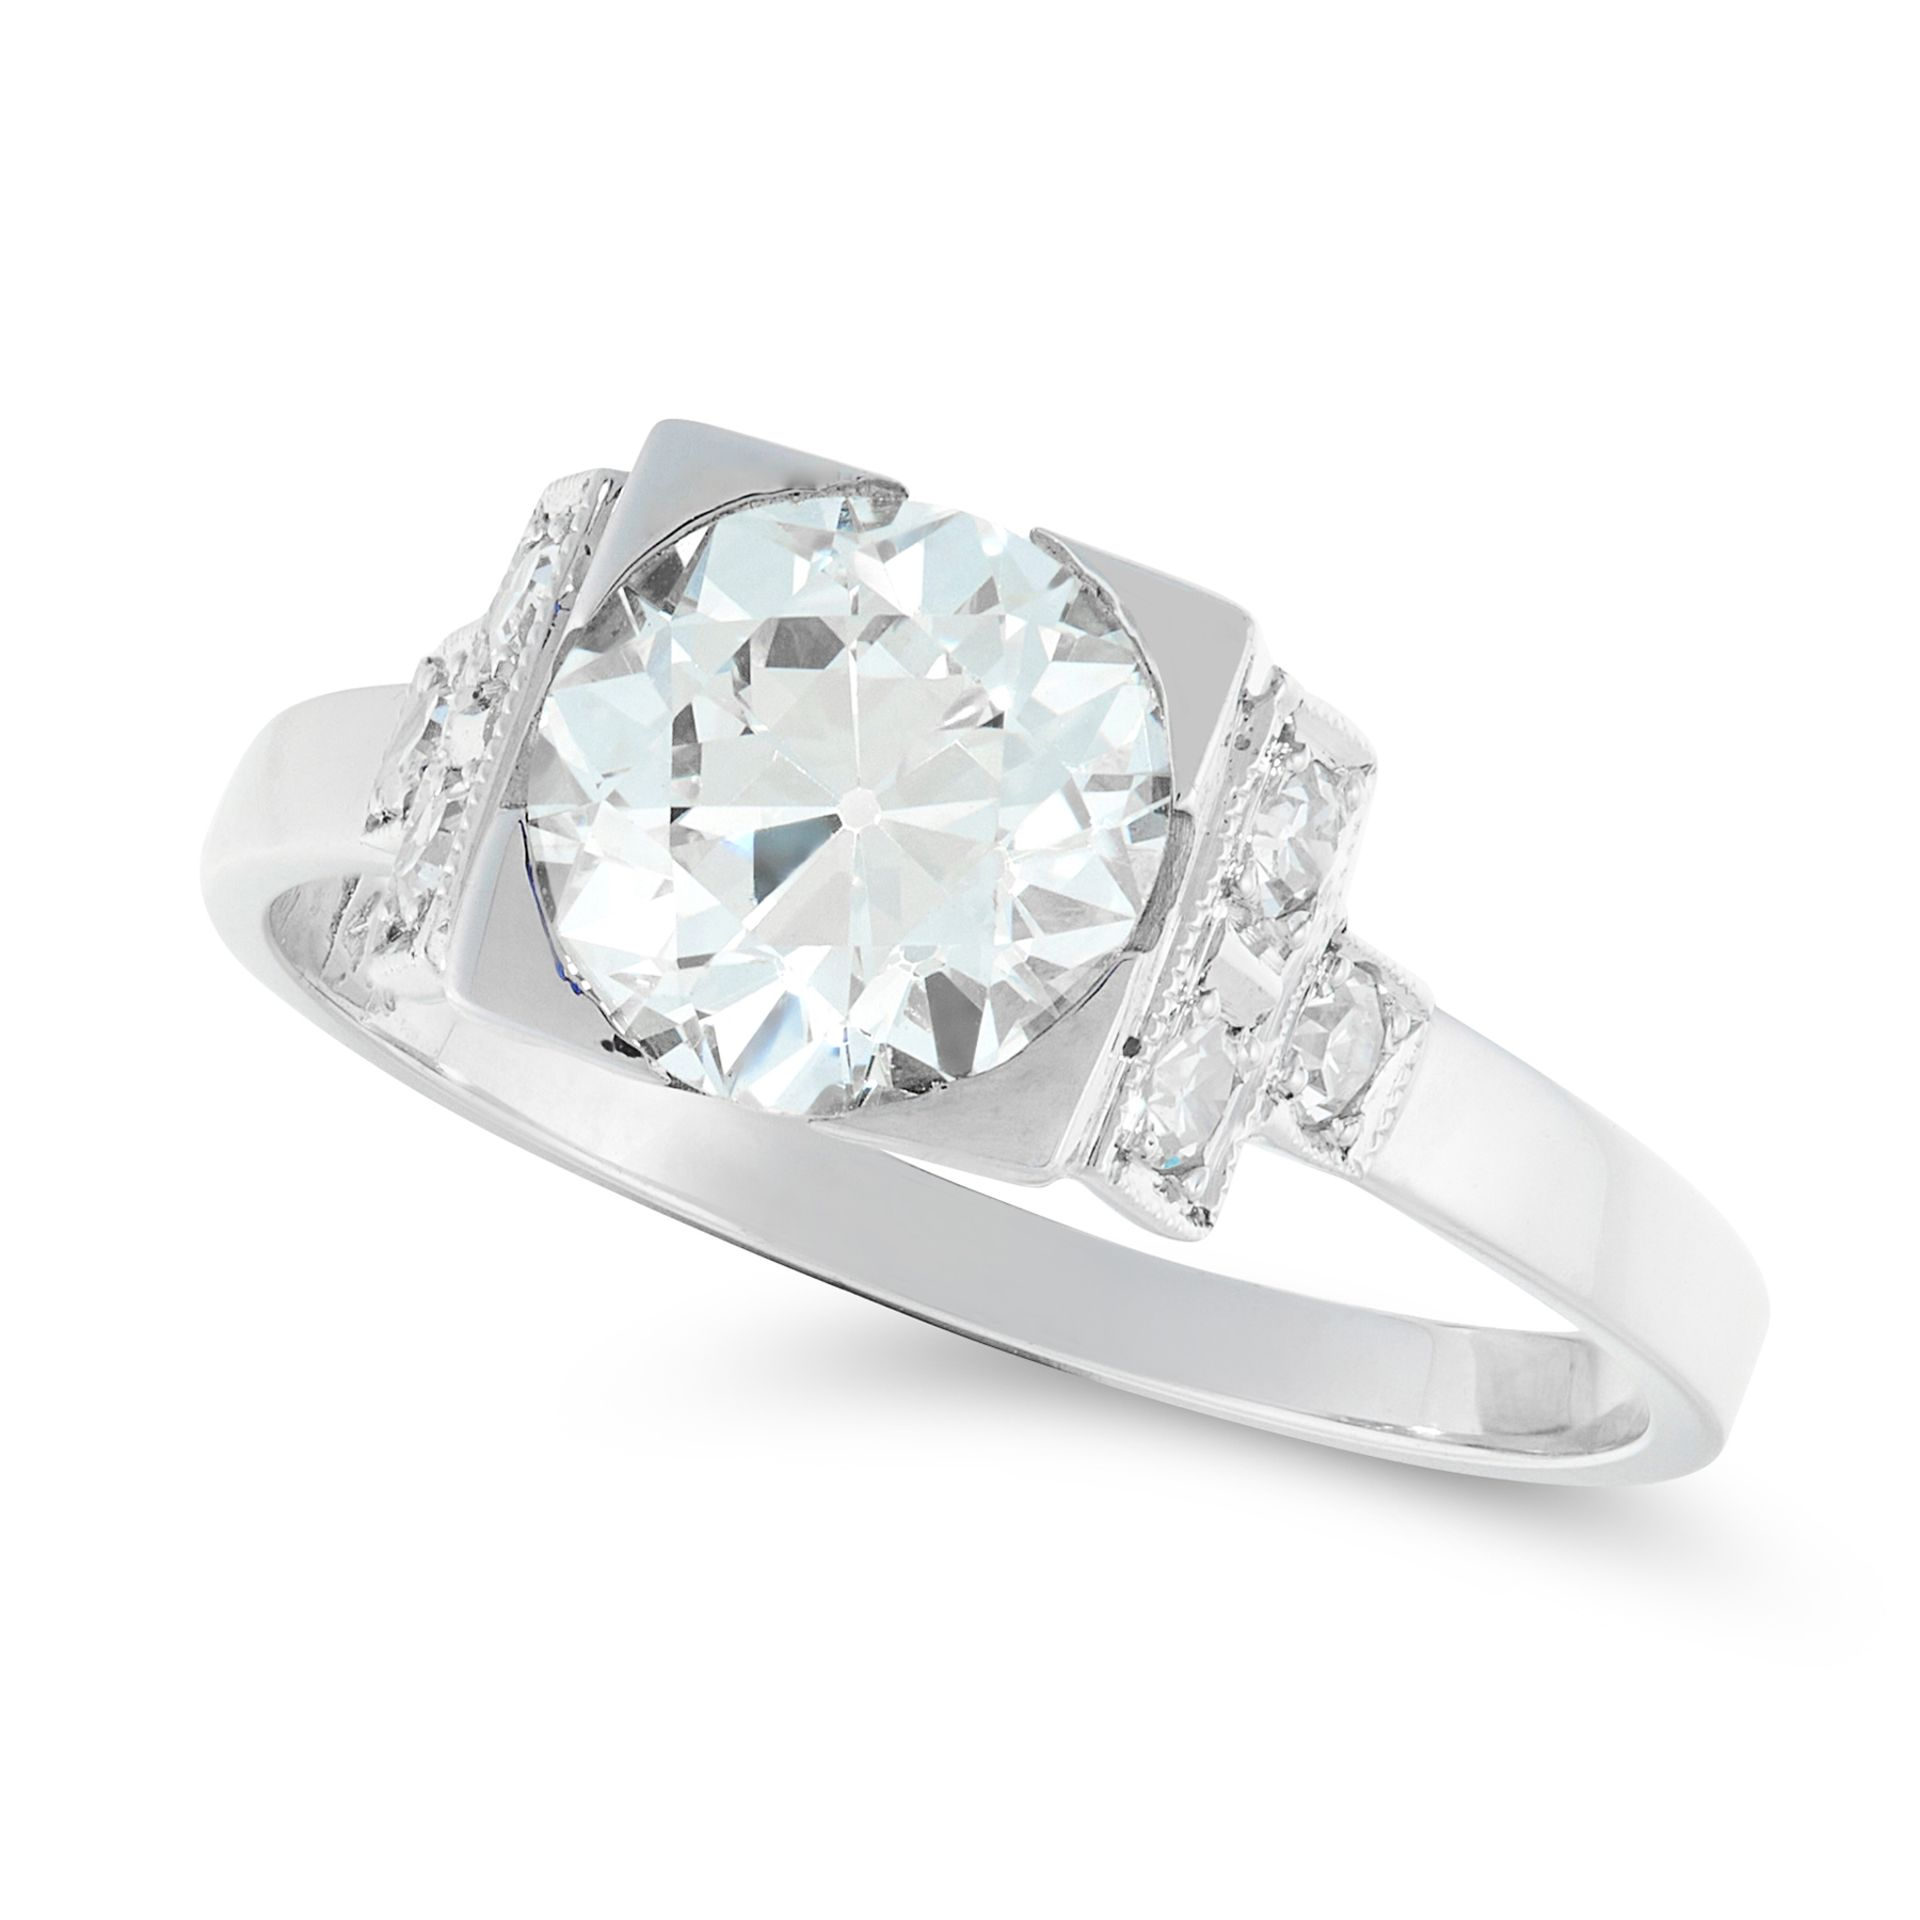 A SOLITIARE DIAMOND RING in white gold, set with a principal old cut diamond of 1.68 carats, between - Bild 2 aus 2